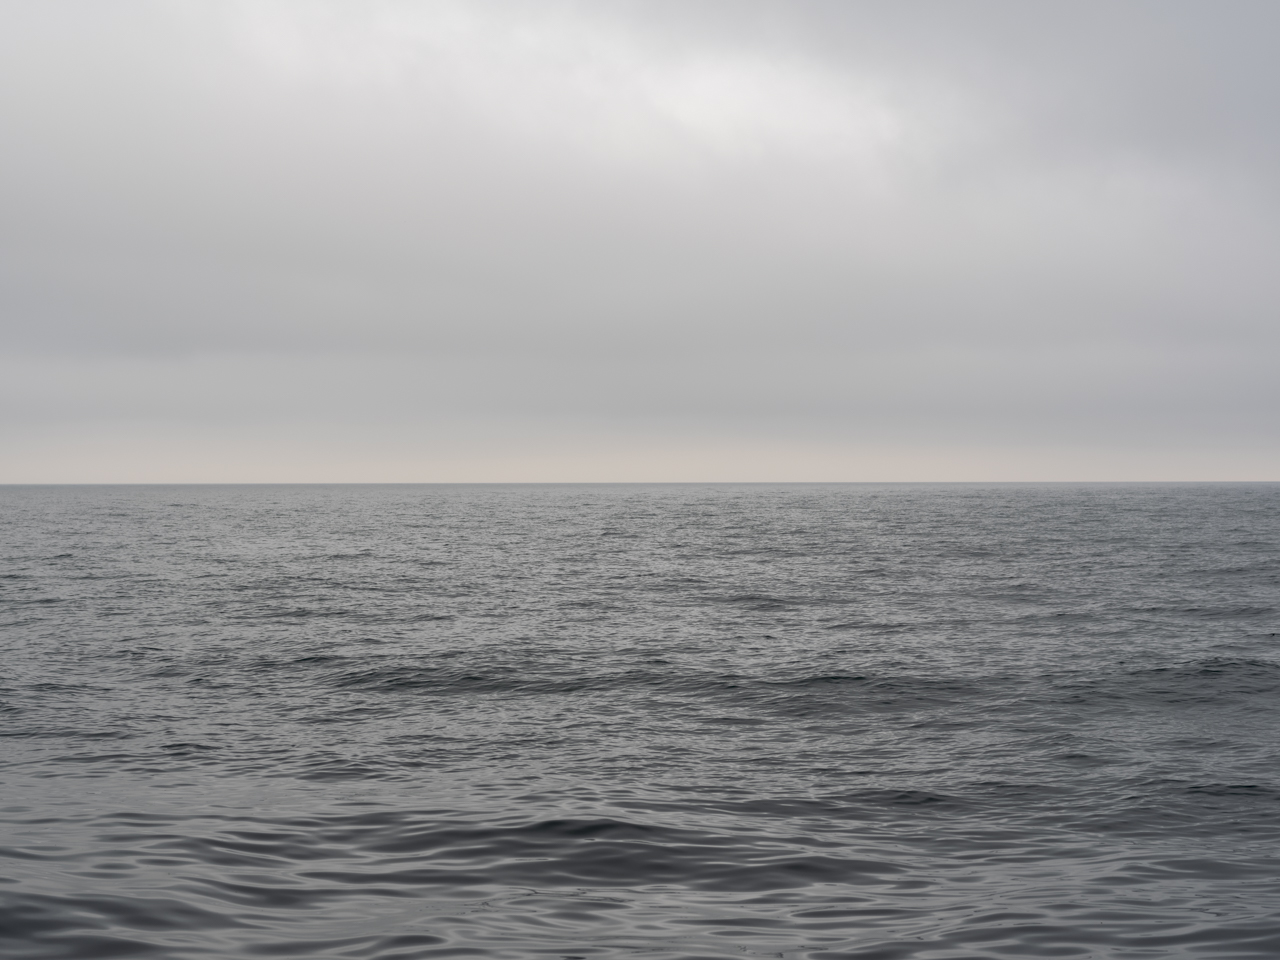 a monochrome Lake Michigan, in silvers and grays, sit delicately beneath a gauzy and cloudy sky